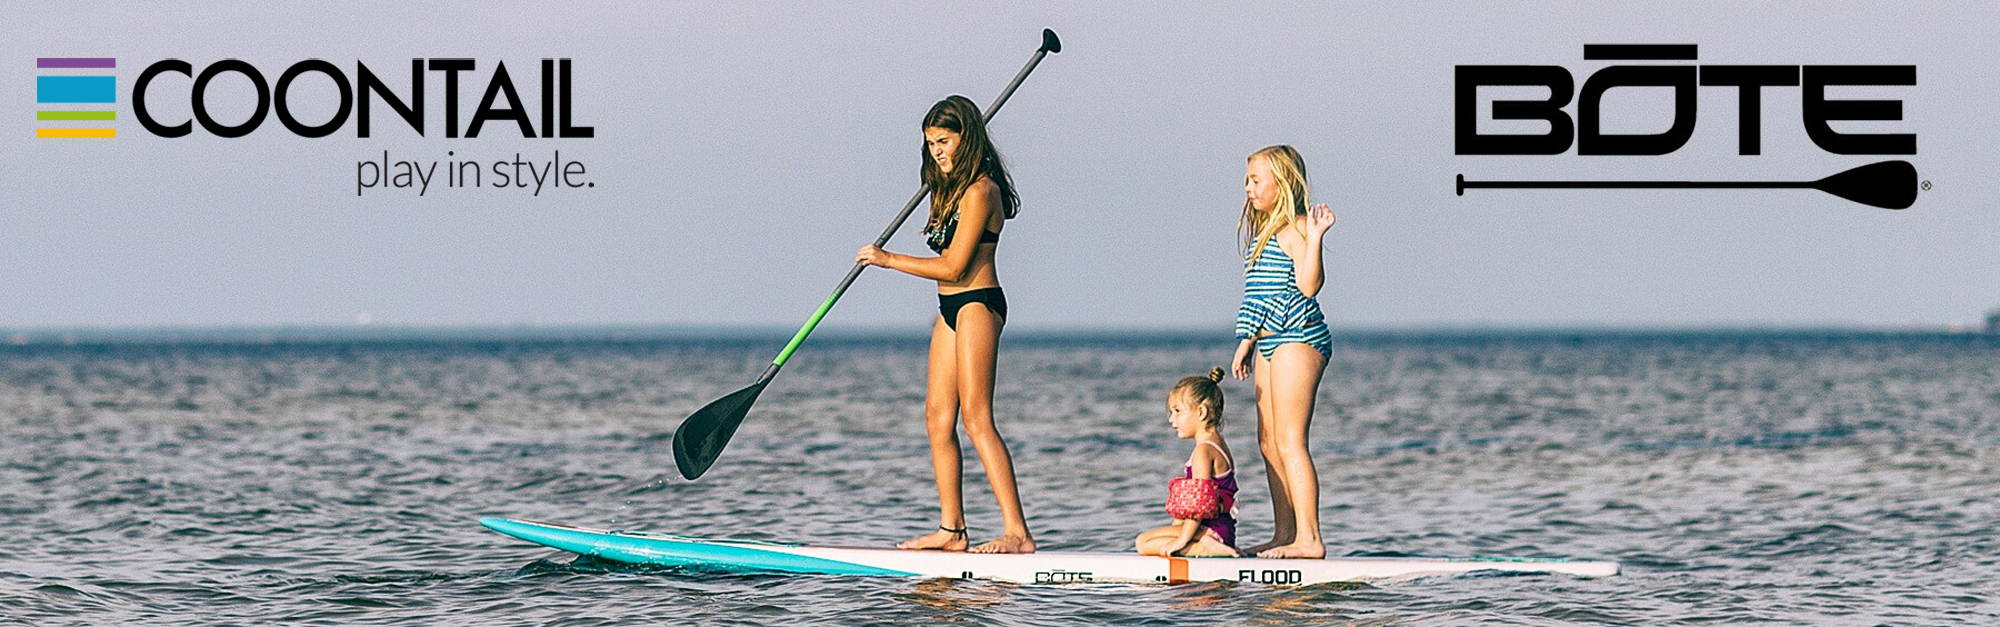 wisconsin bote paddle board dealer